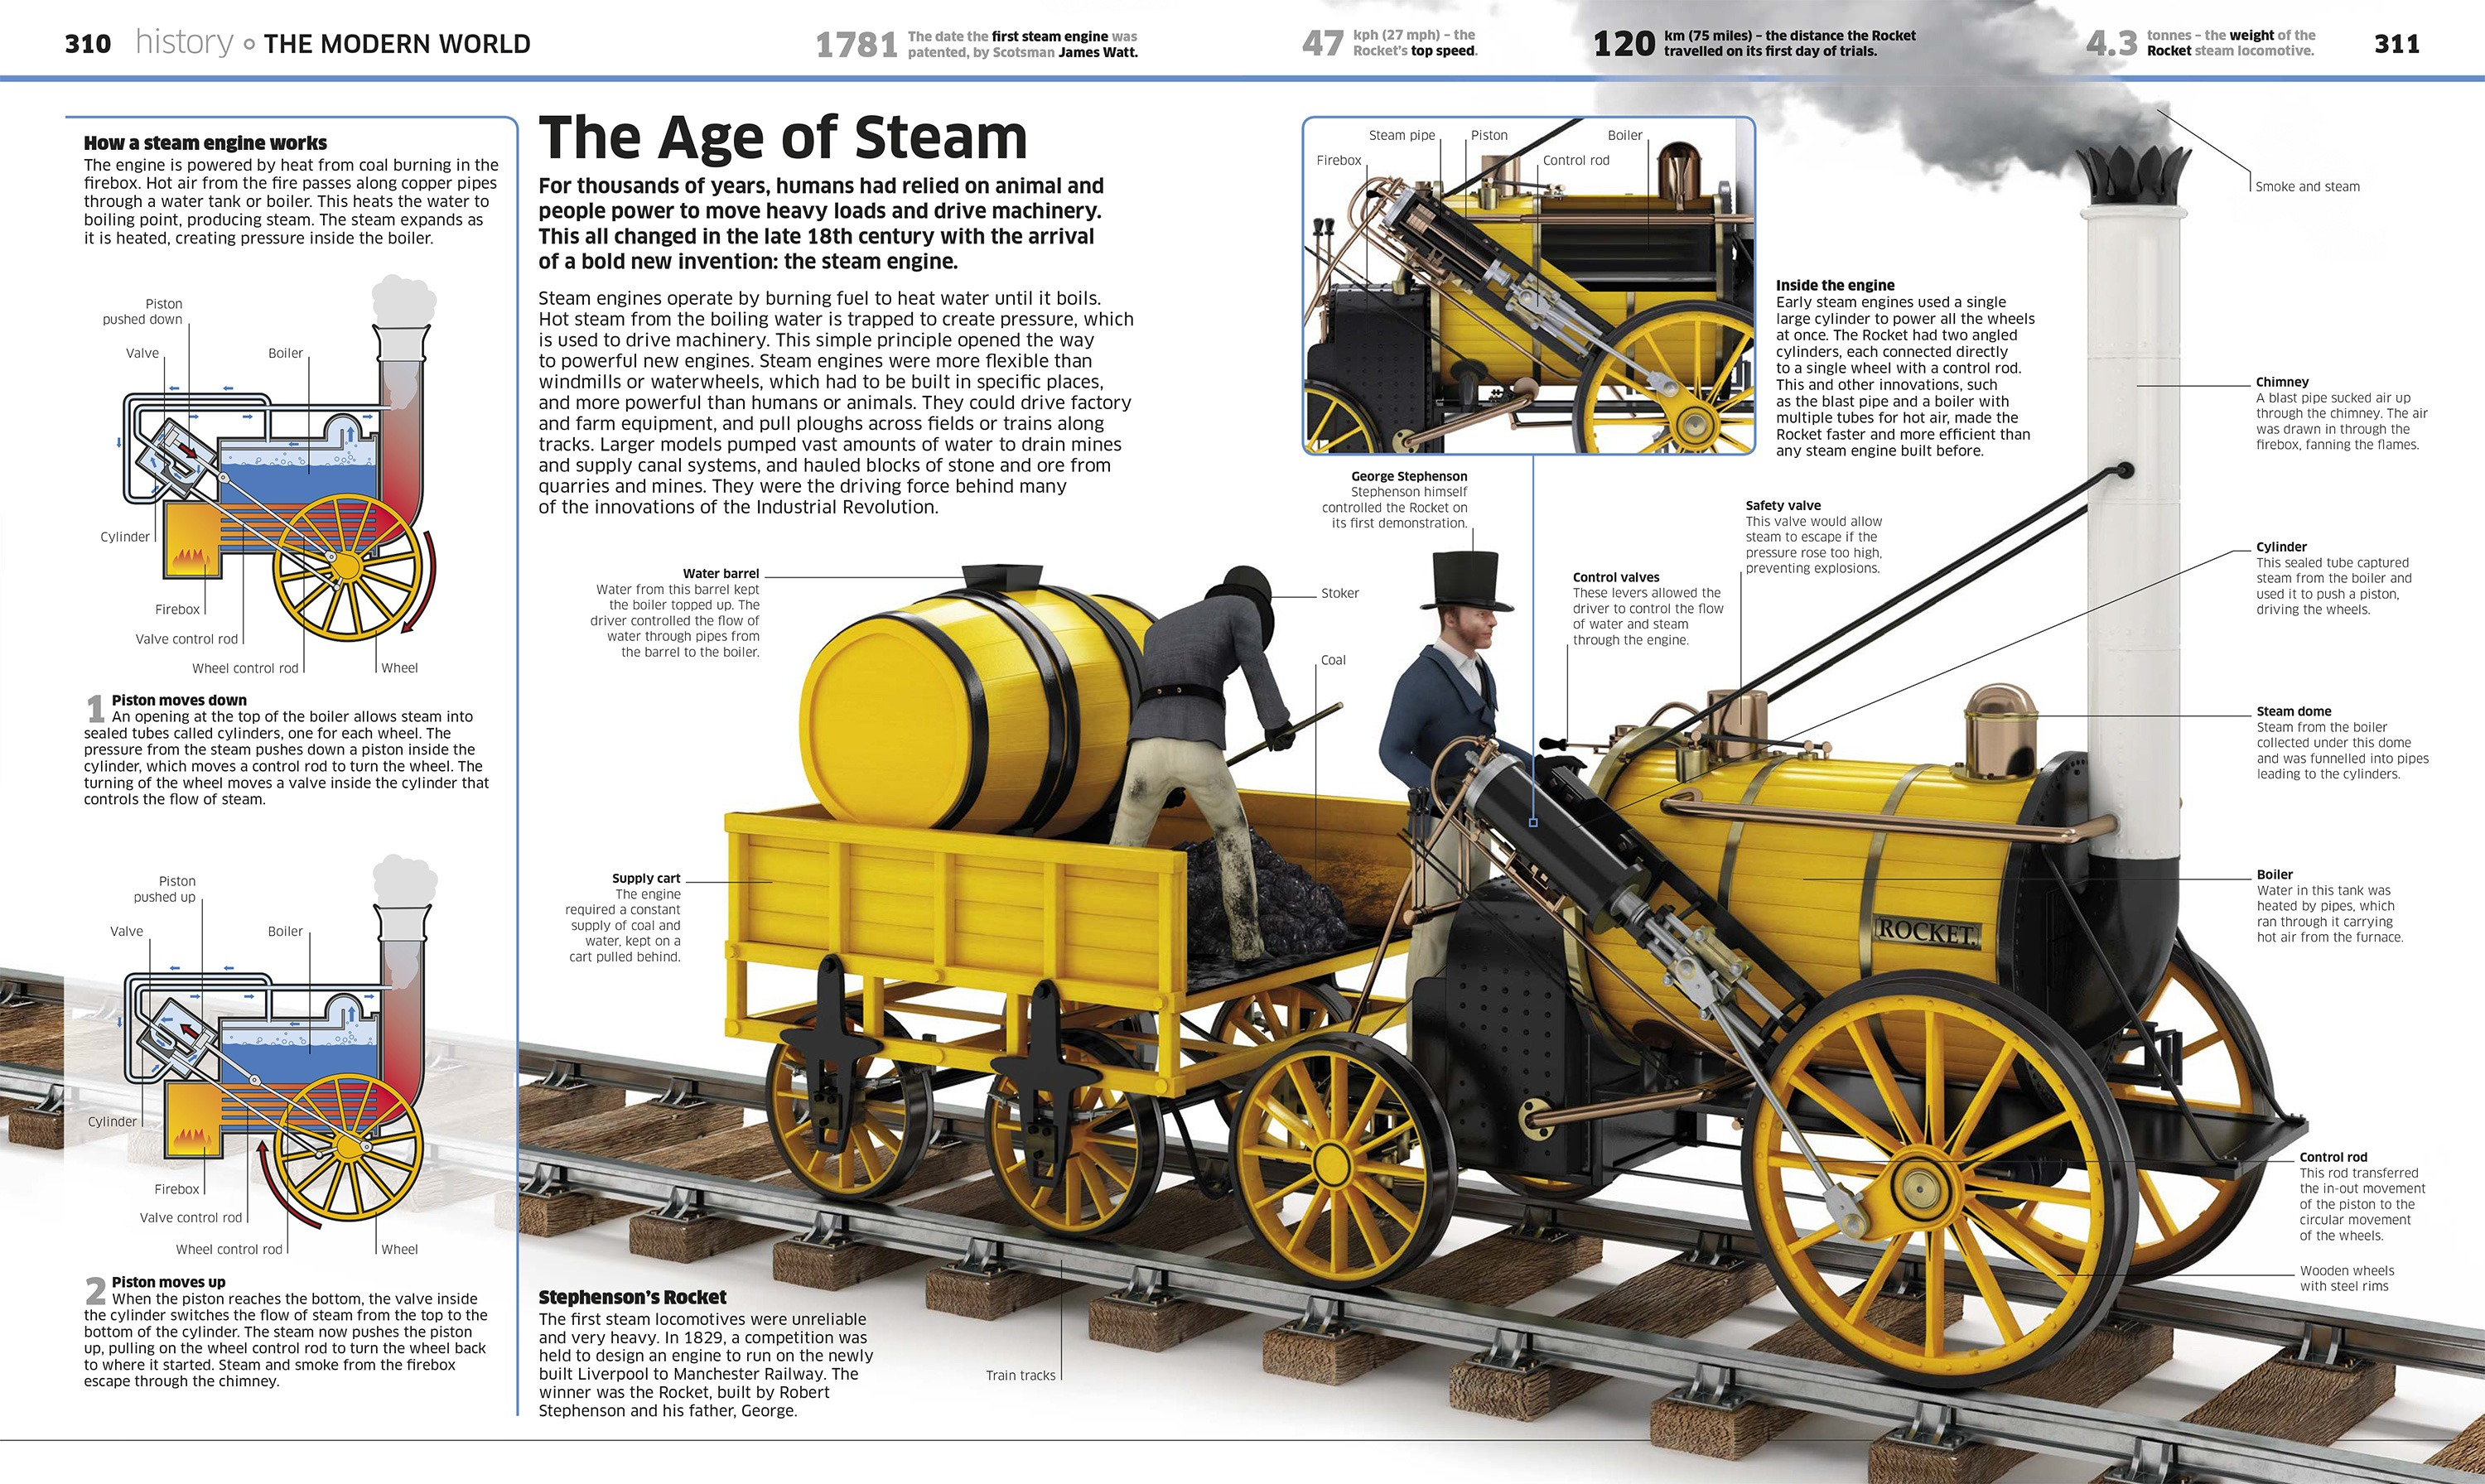 stas3dart-dorling-kindersley-knowledge-encyclopedia-illustration-stephenson-rocket.jpg-